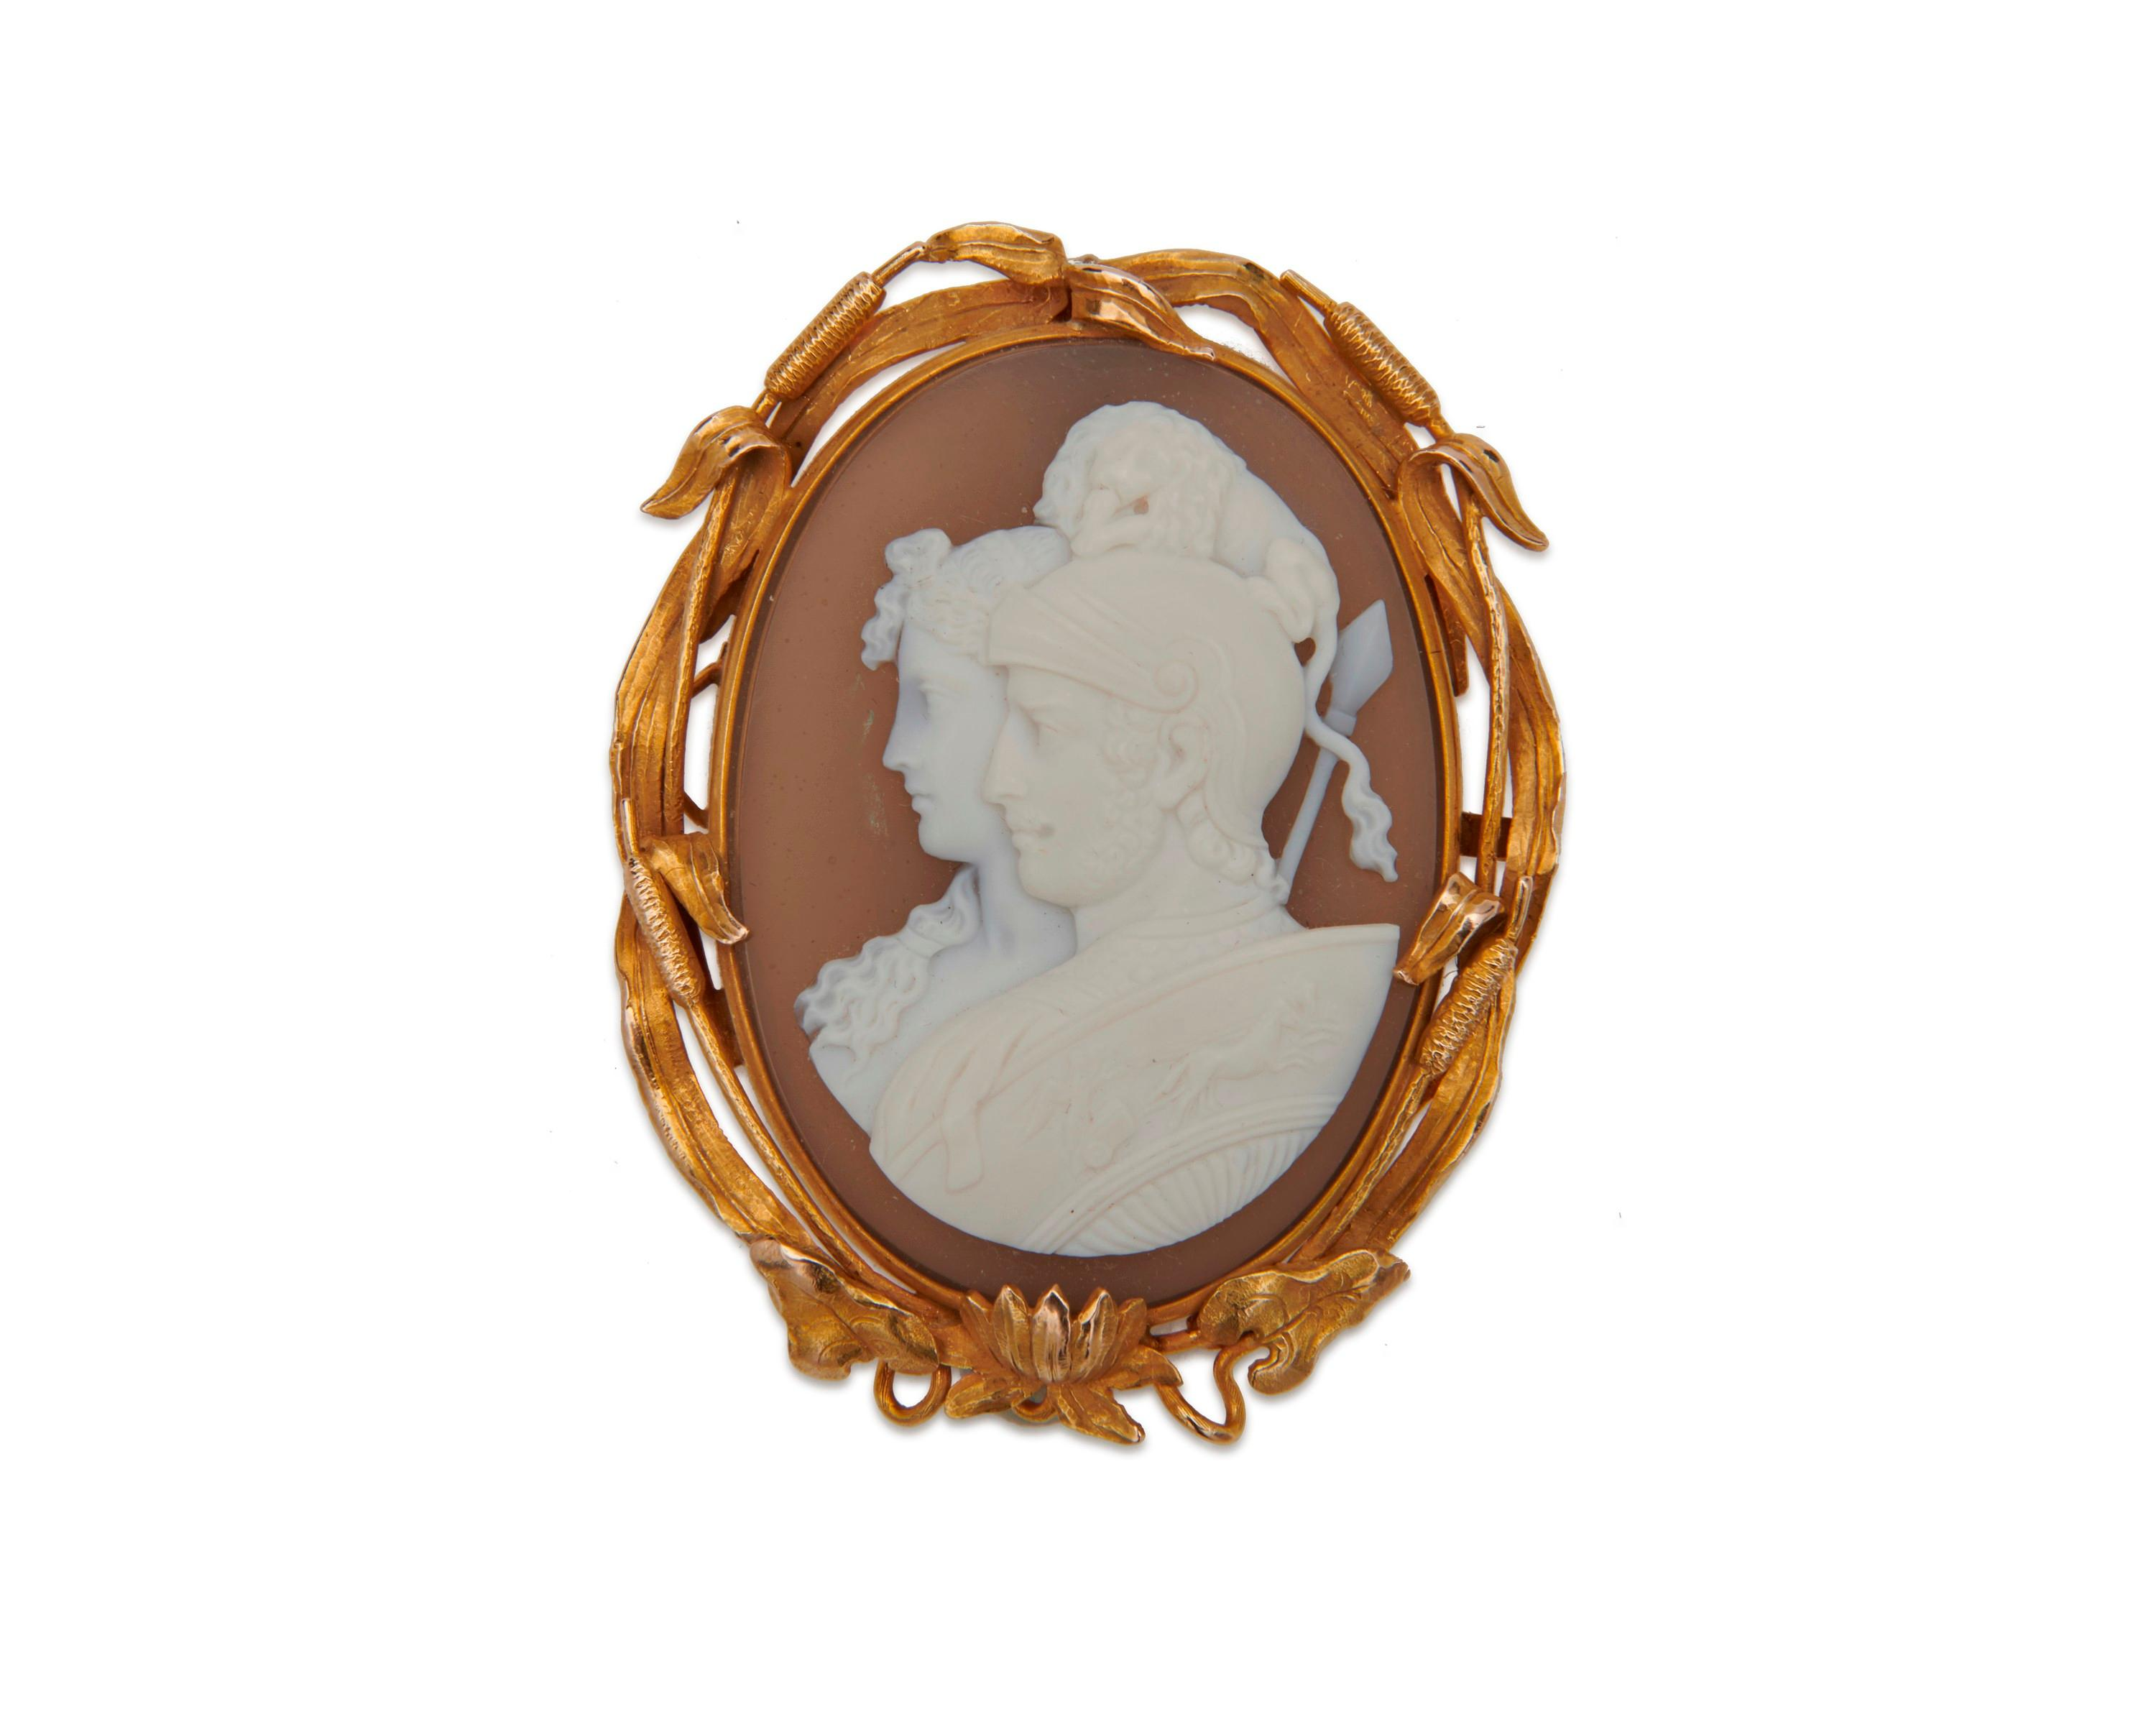 14K Gold and Carved Agate Cameo Brooch